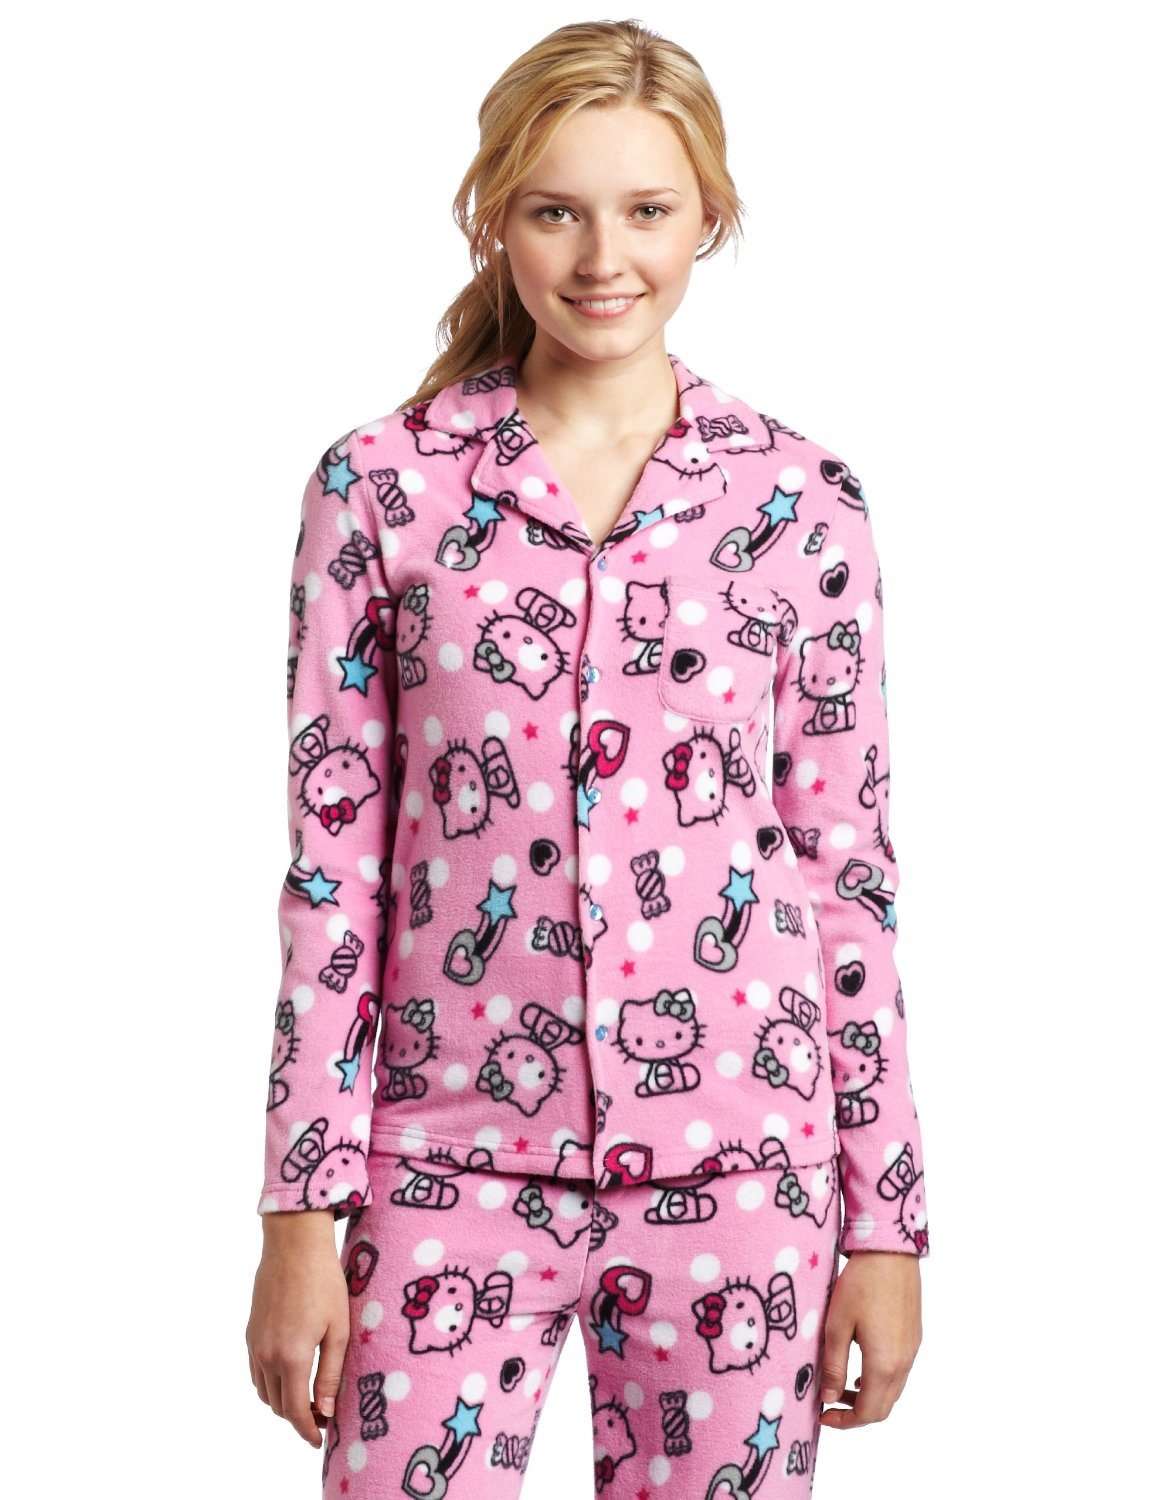 Pajamas should be comfortable to wear throughout the year, but many pajamas are strictly seasonal; silk sets tend to do better in the summer months, while flannel is a winter weight fabric. The compromise is cotton, which regulates body heat better than other pajama cloths.